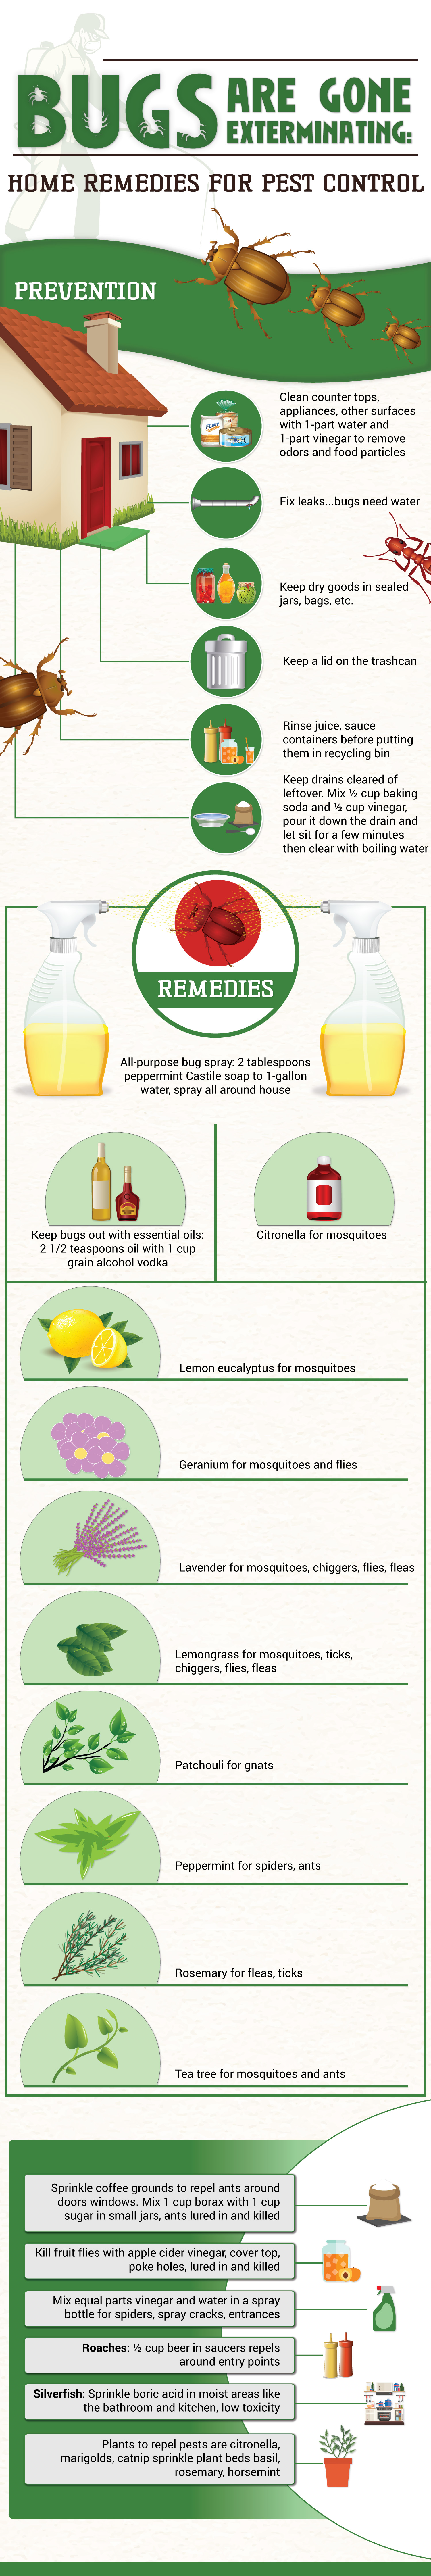 23-do-it-yourself-pest-control-tips-infographic-1